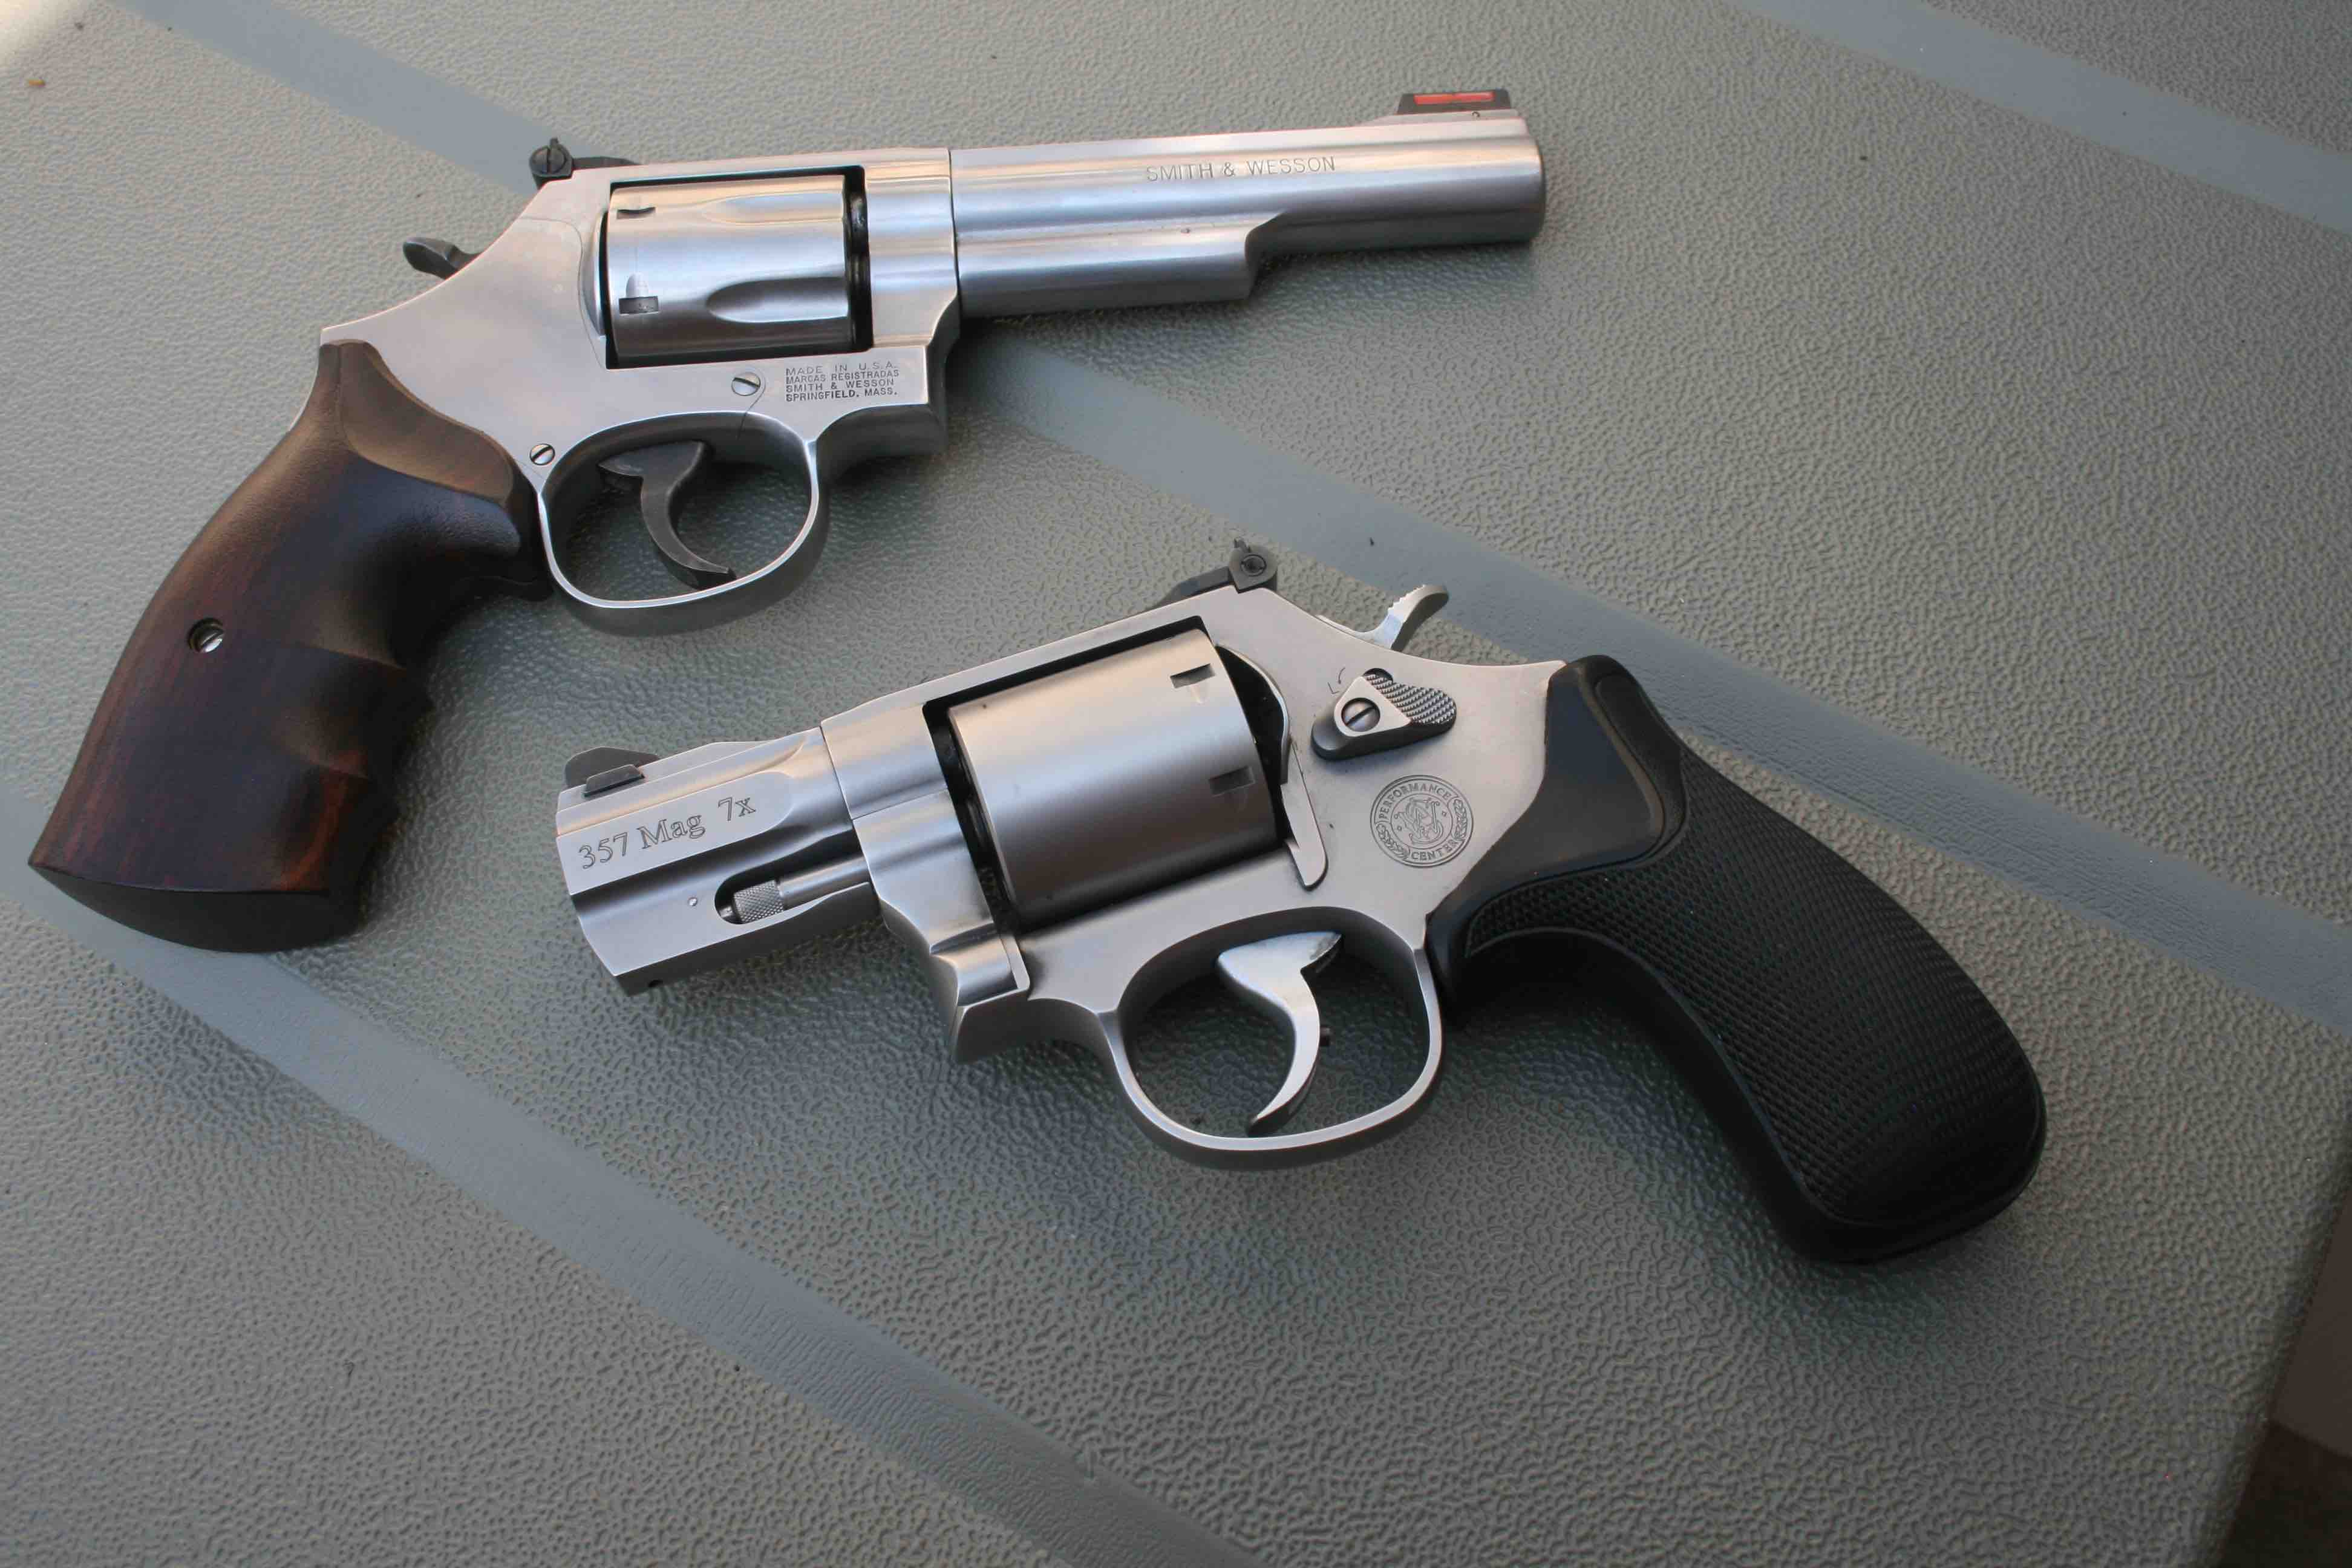 Limited Edition Model 686 Has A Five Inch Bull Barrel And Seven Shot Cylinder PC Bottom Was Worthy Stablemate